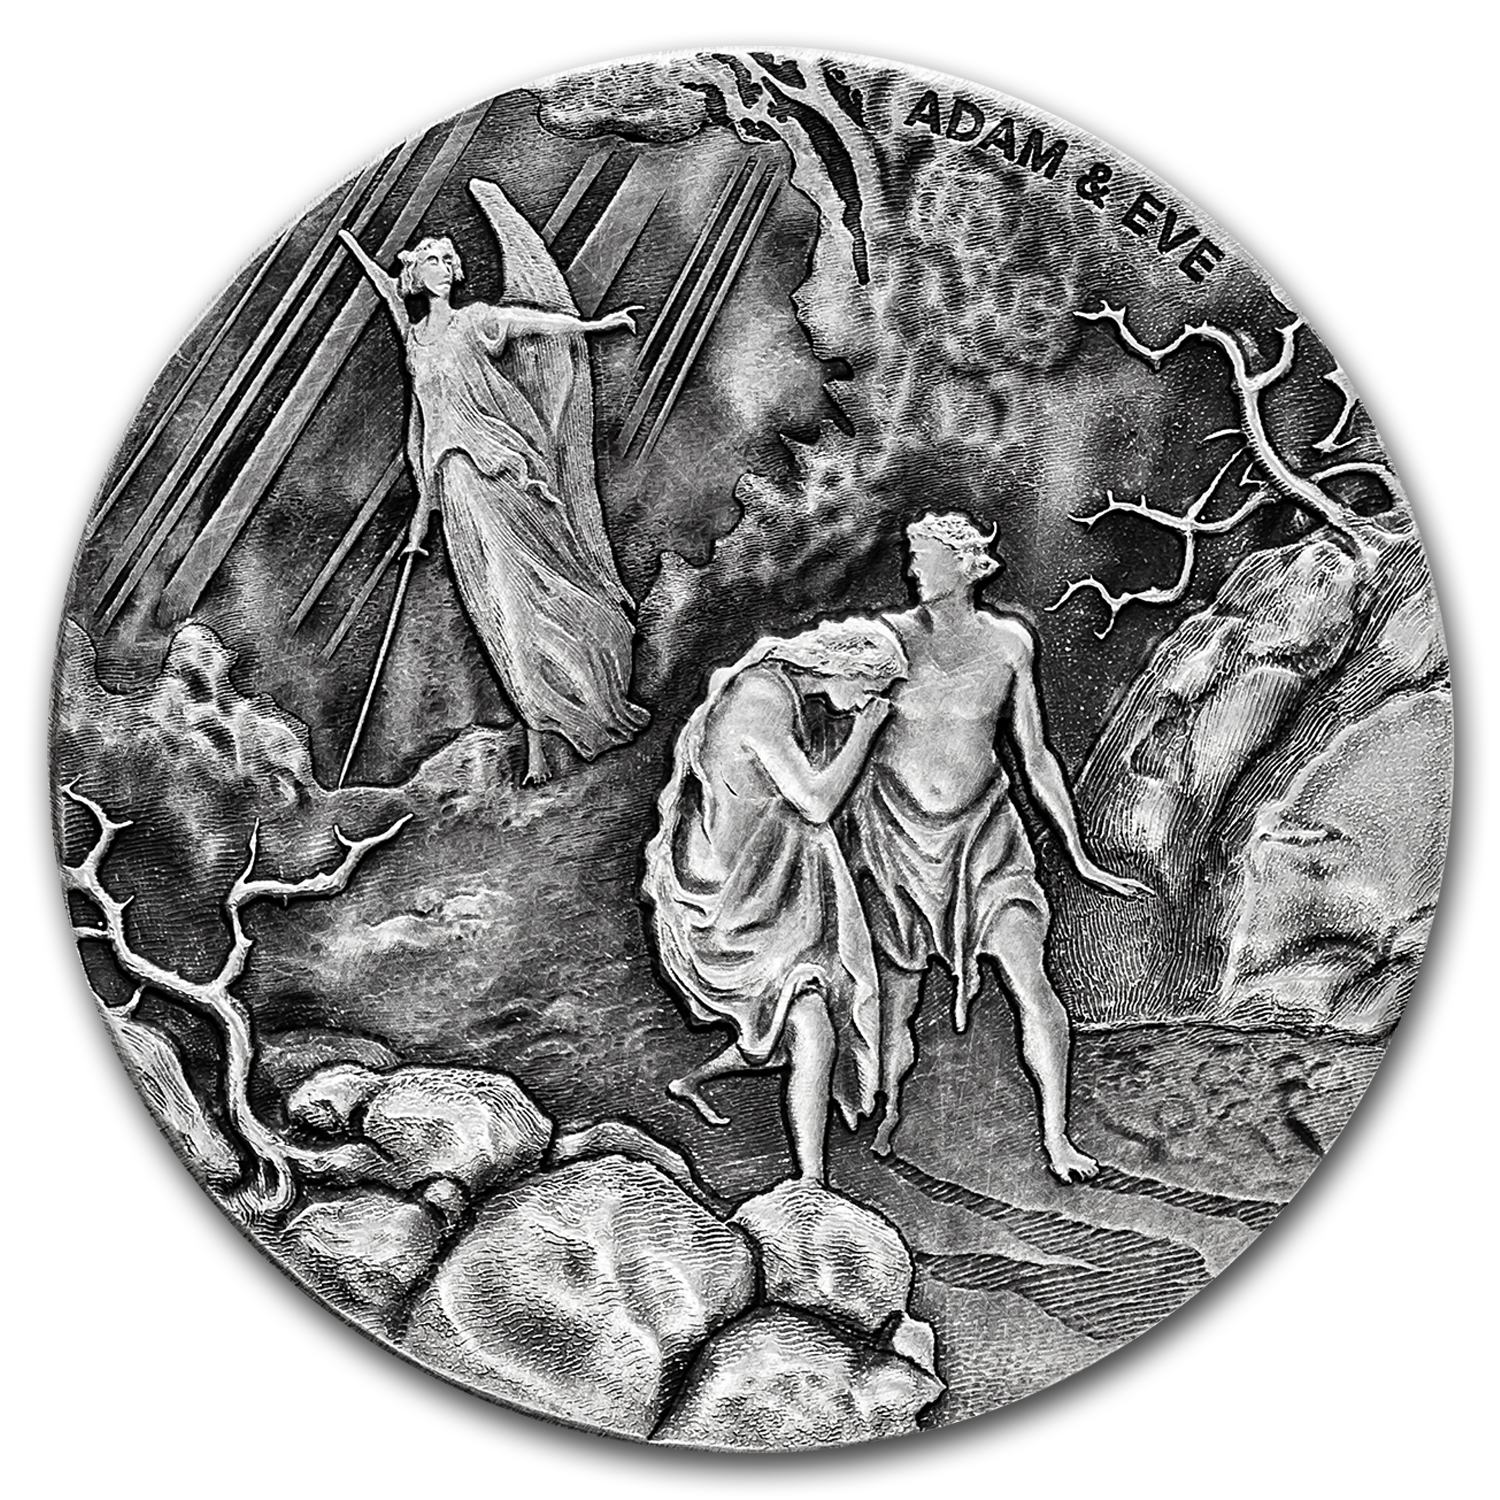 2016 2 oz Silver Coin - Biblical Series (Adam and Eve)